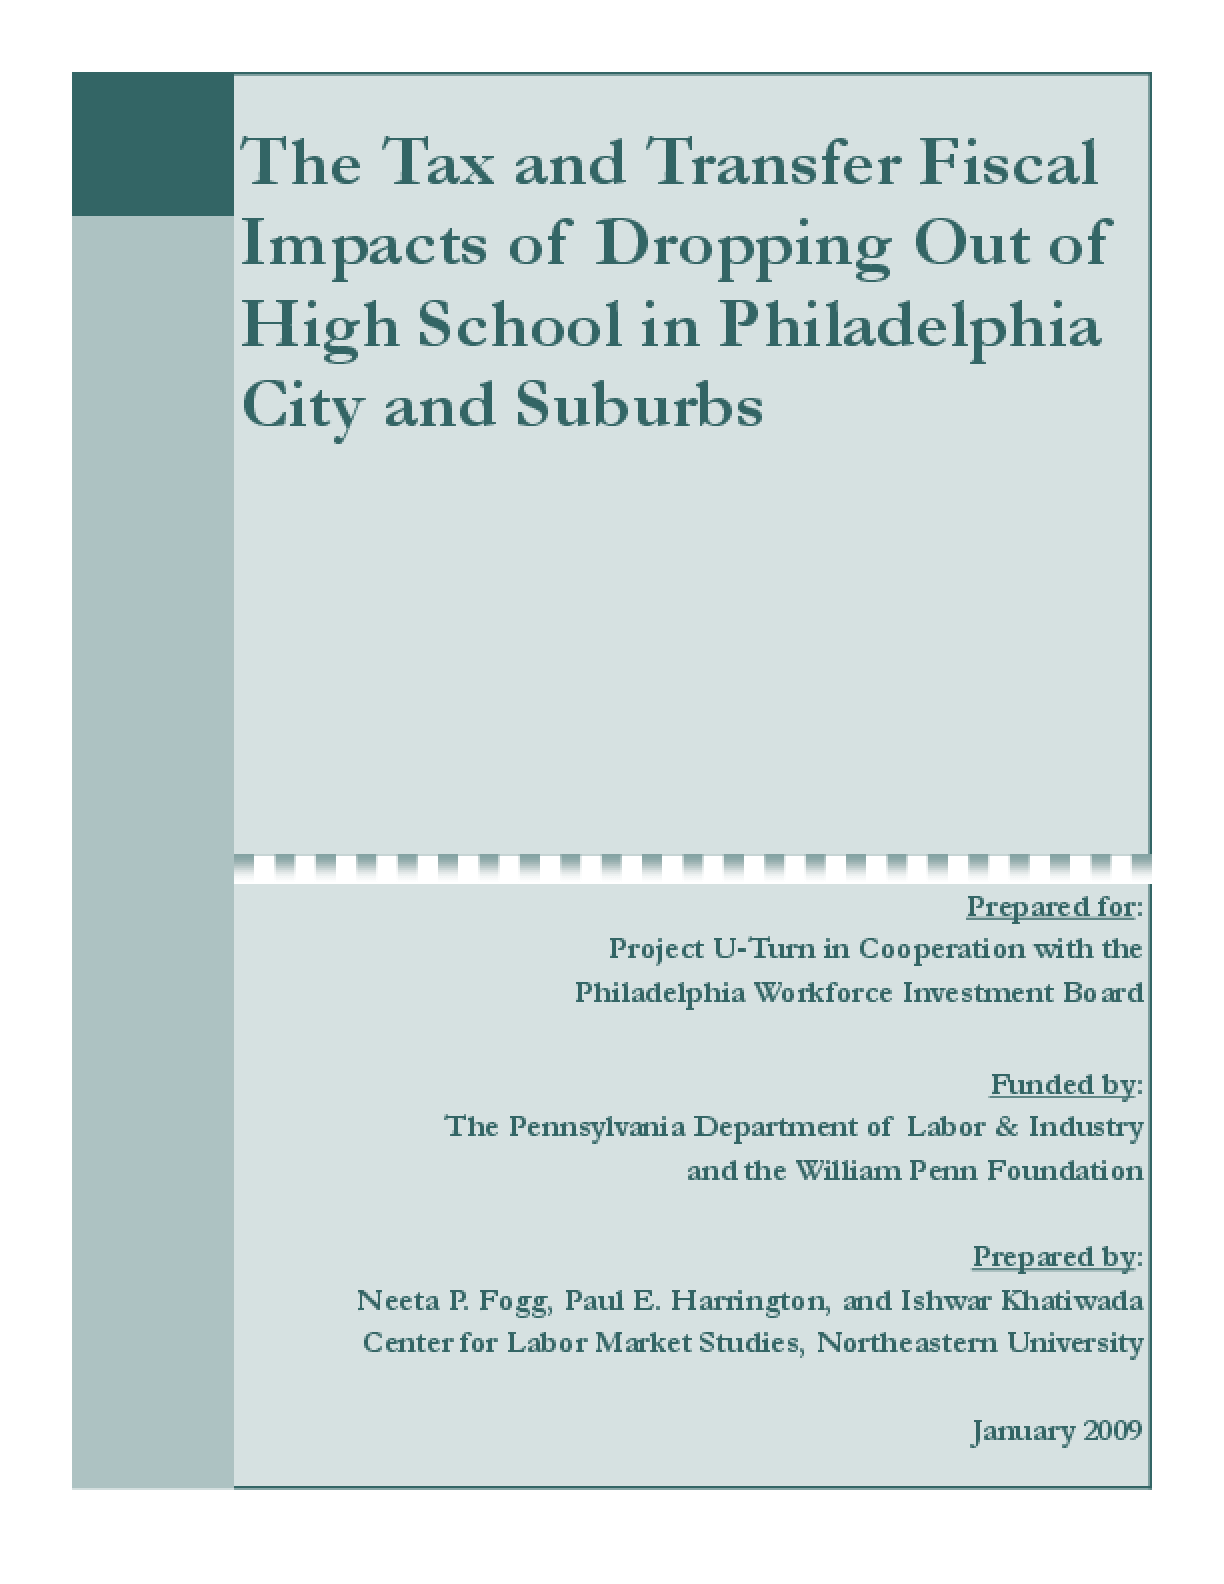 Tax and Transfer Fiscal Impacts of Dropping Out of High School in Philadelphia City and Suburbs, The